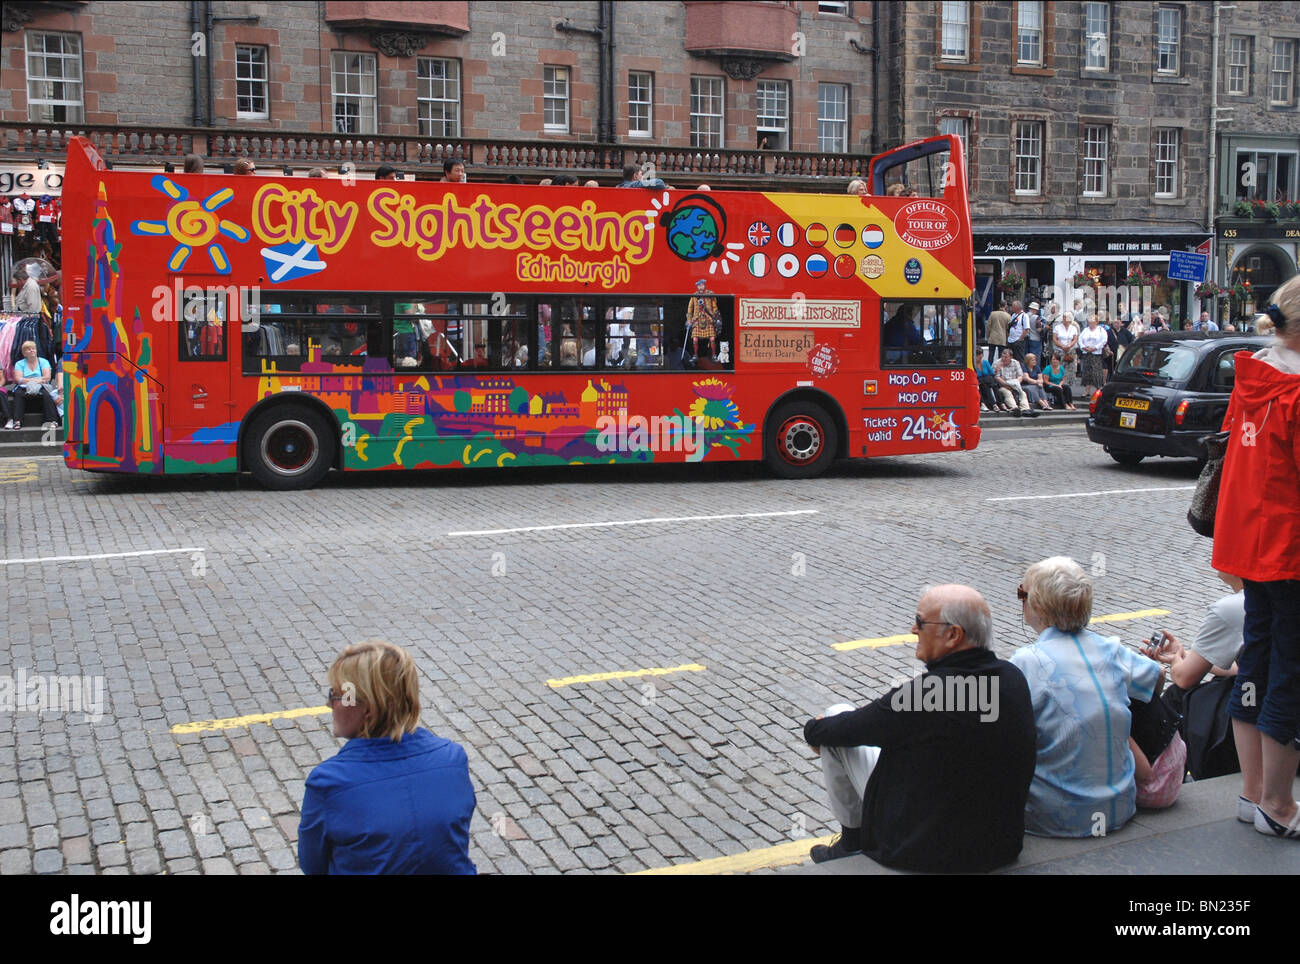 Sightseeing bus making its way down the Royal Mile (High Street) in Edinburgh. - Stock Image